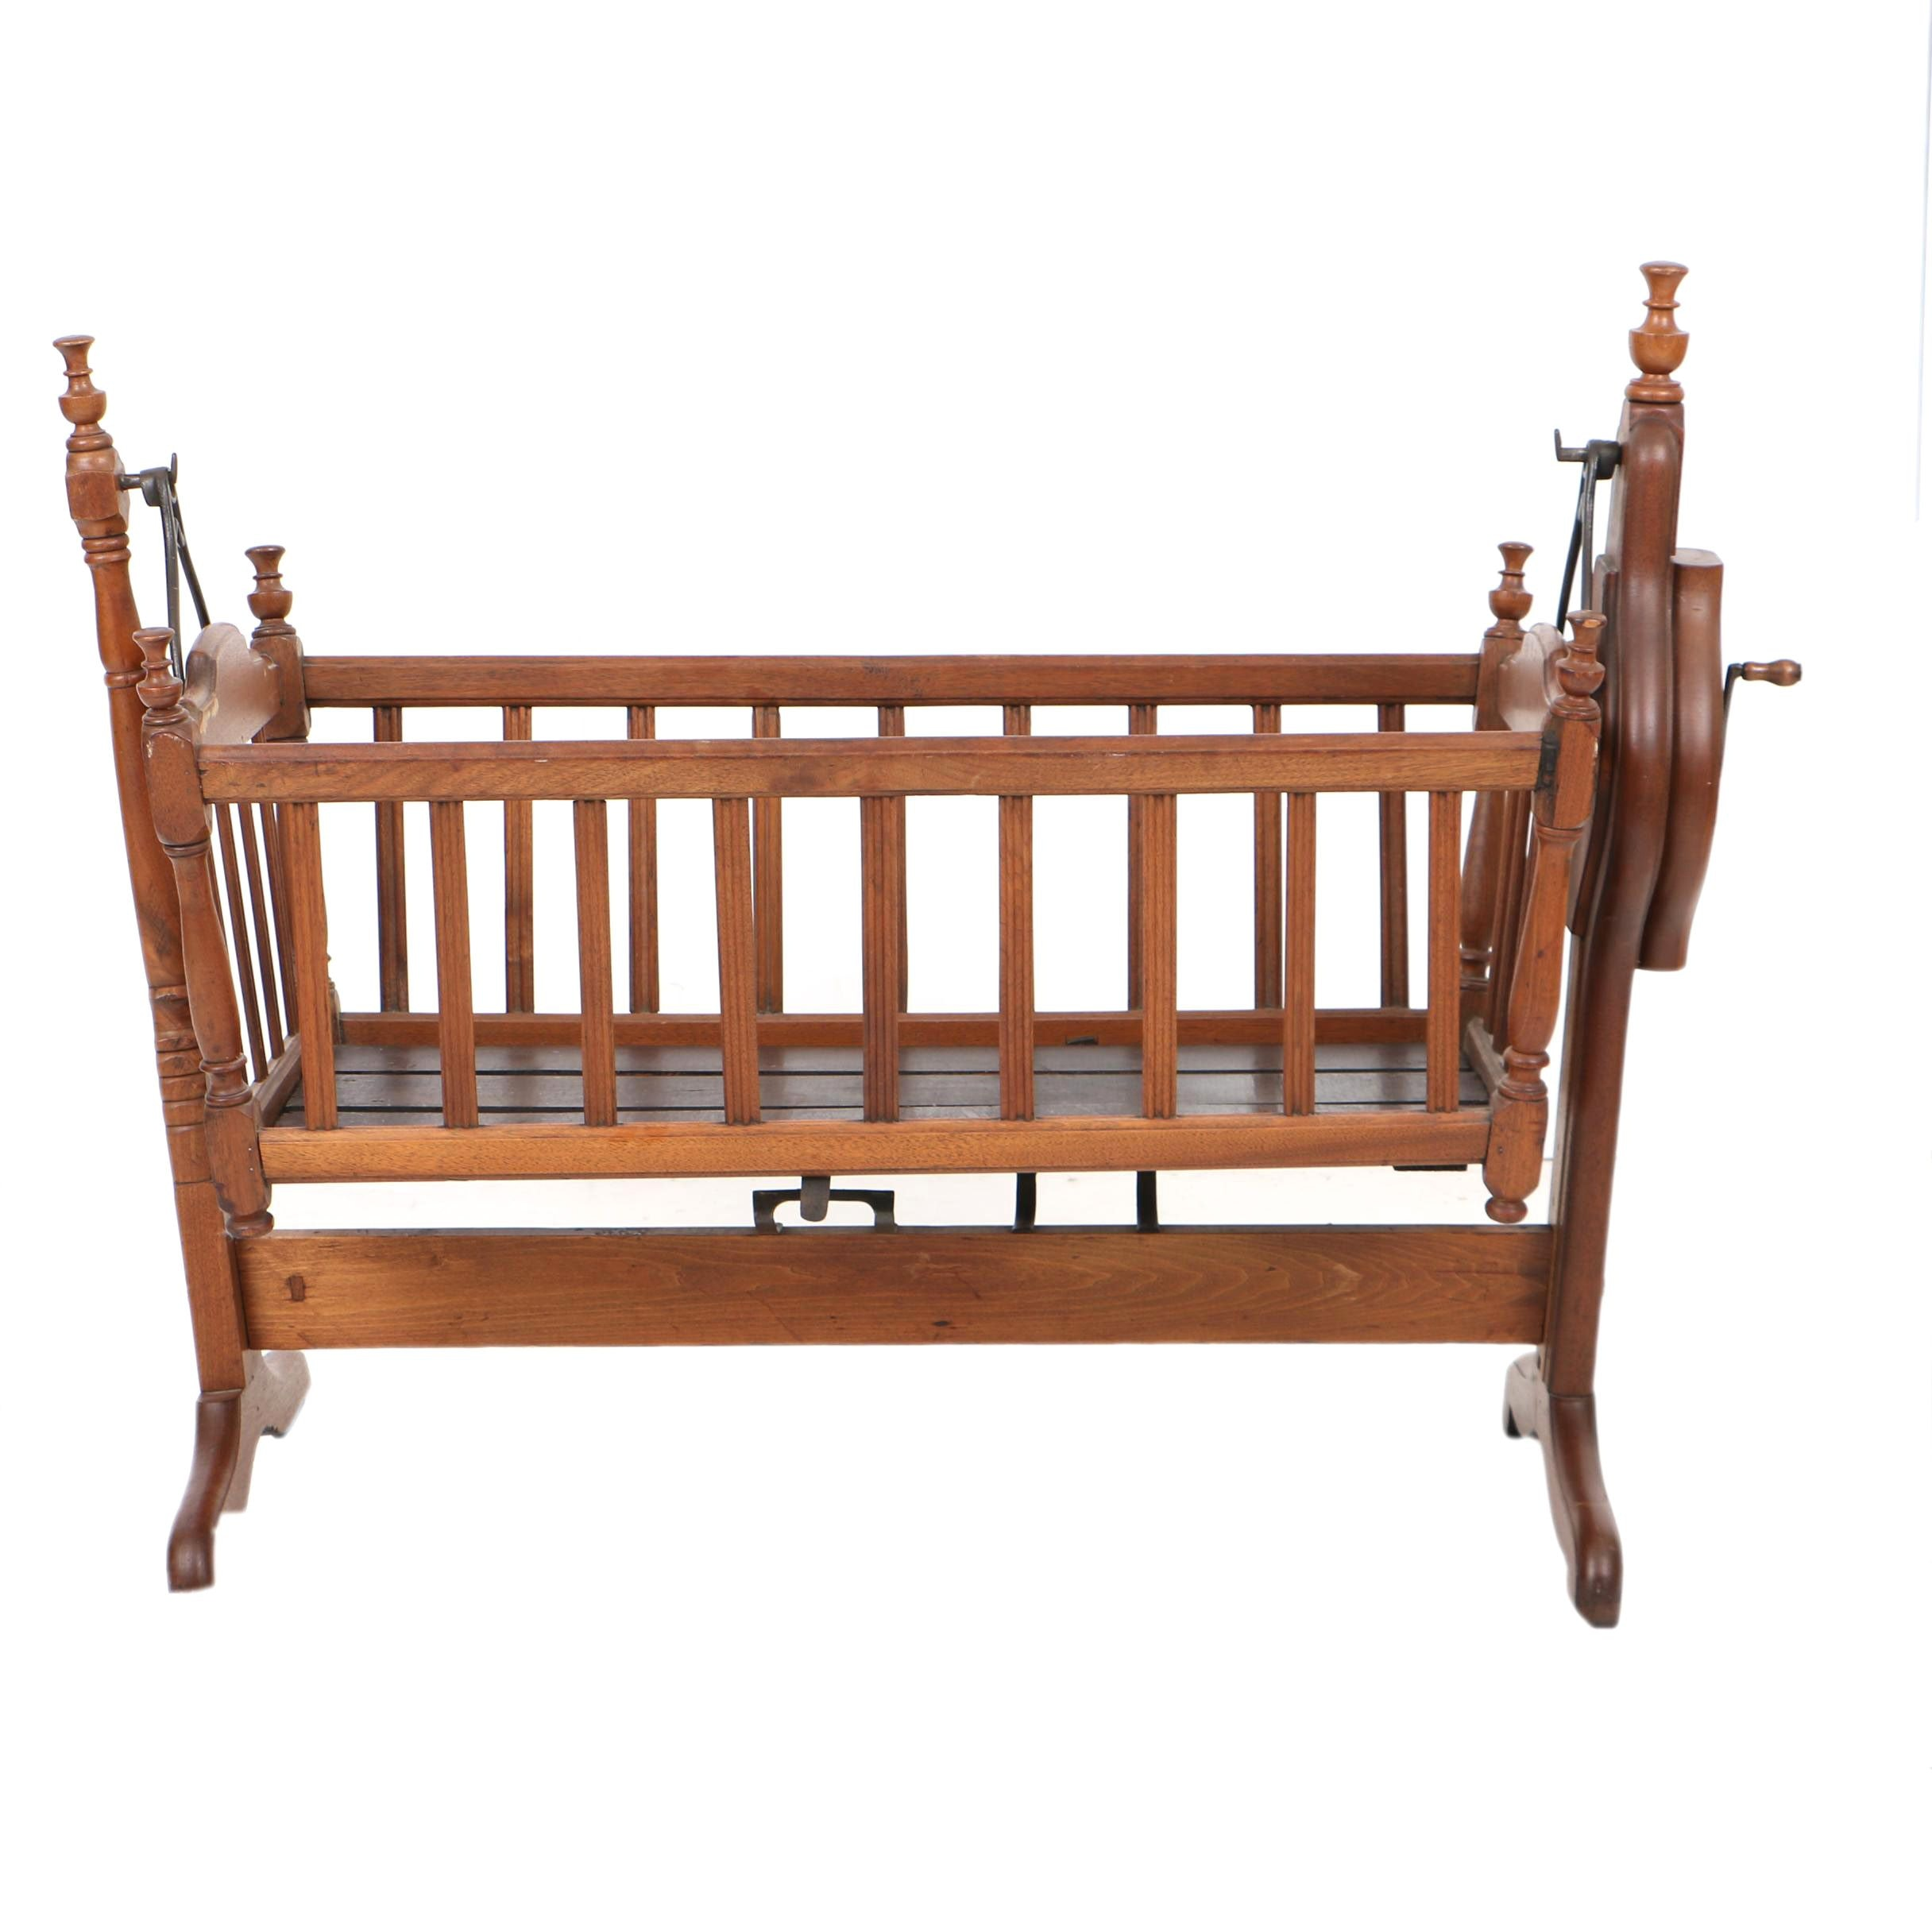 Antique Victorian Mechanized Rocking Cradle in Walnut, Late 19th Century